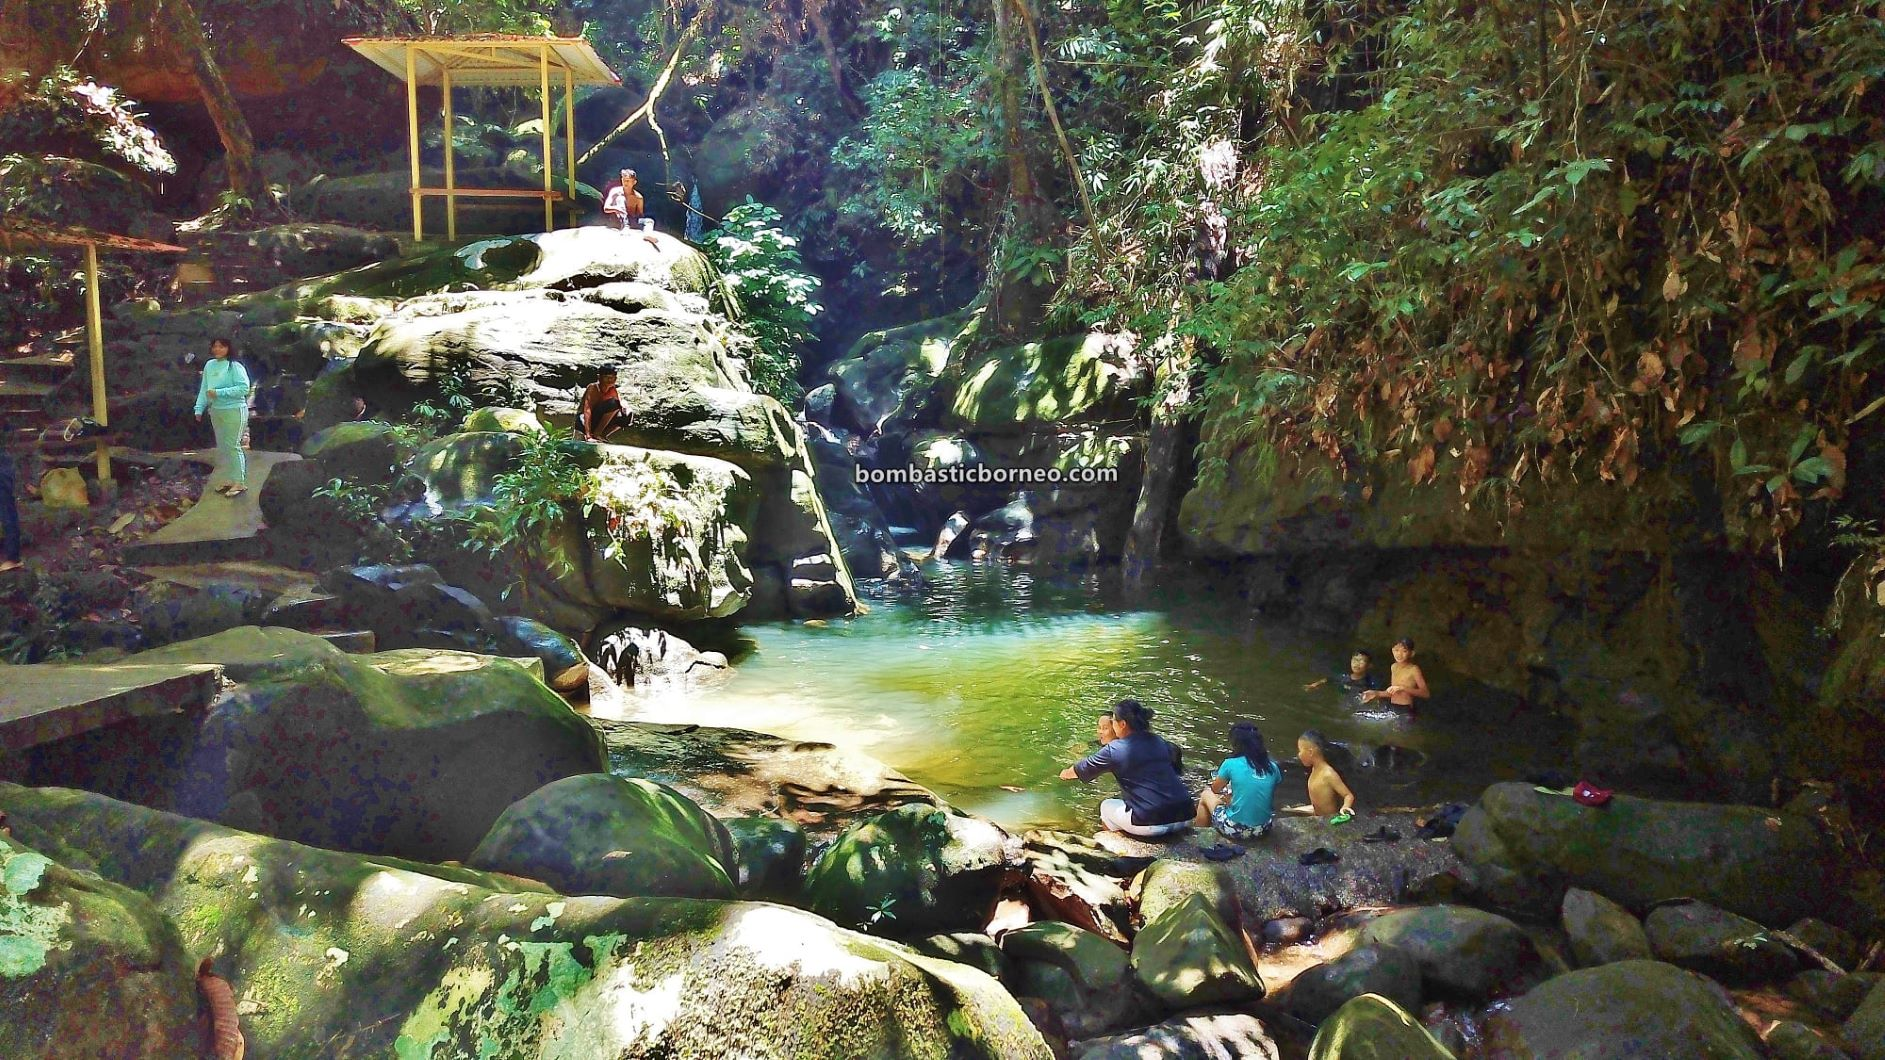 Air Terjun, Satow waterfall, Bobak village, nature, outdoor, destination, picnic, Singai, Kuching, Sarawak, Bau, tarikan pelancong, Tourist attraction, travel local, Borneo